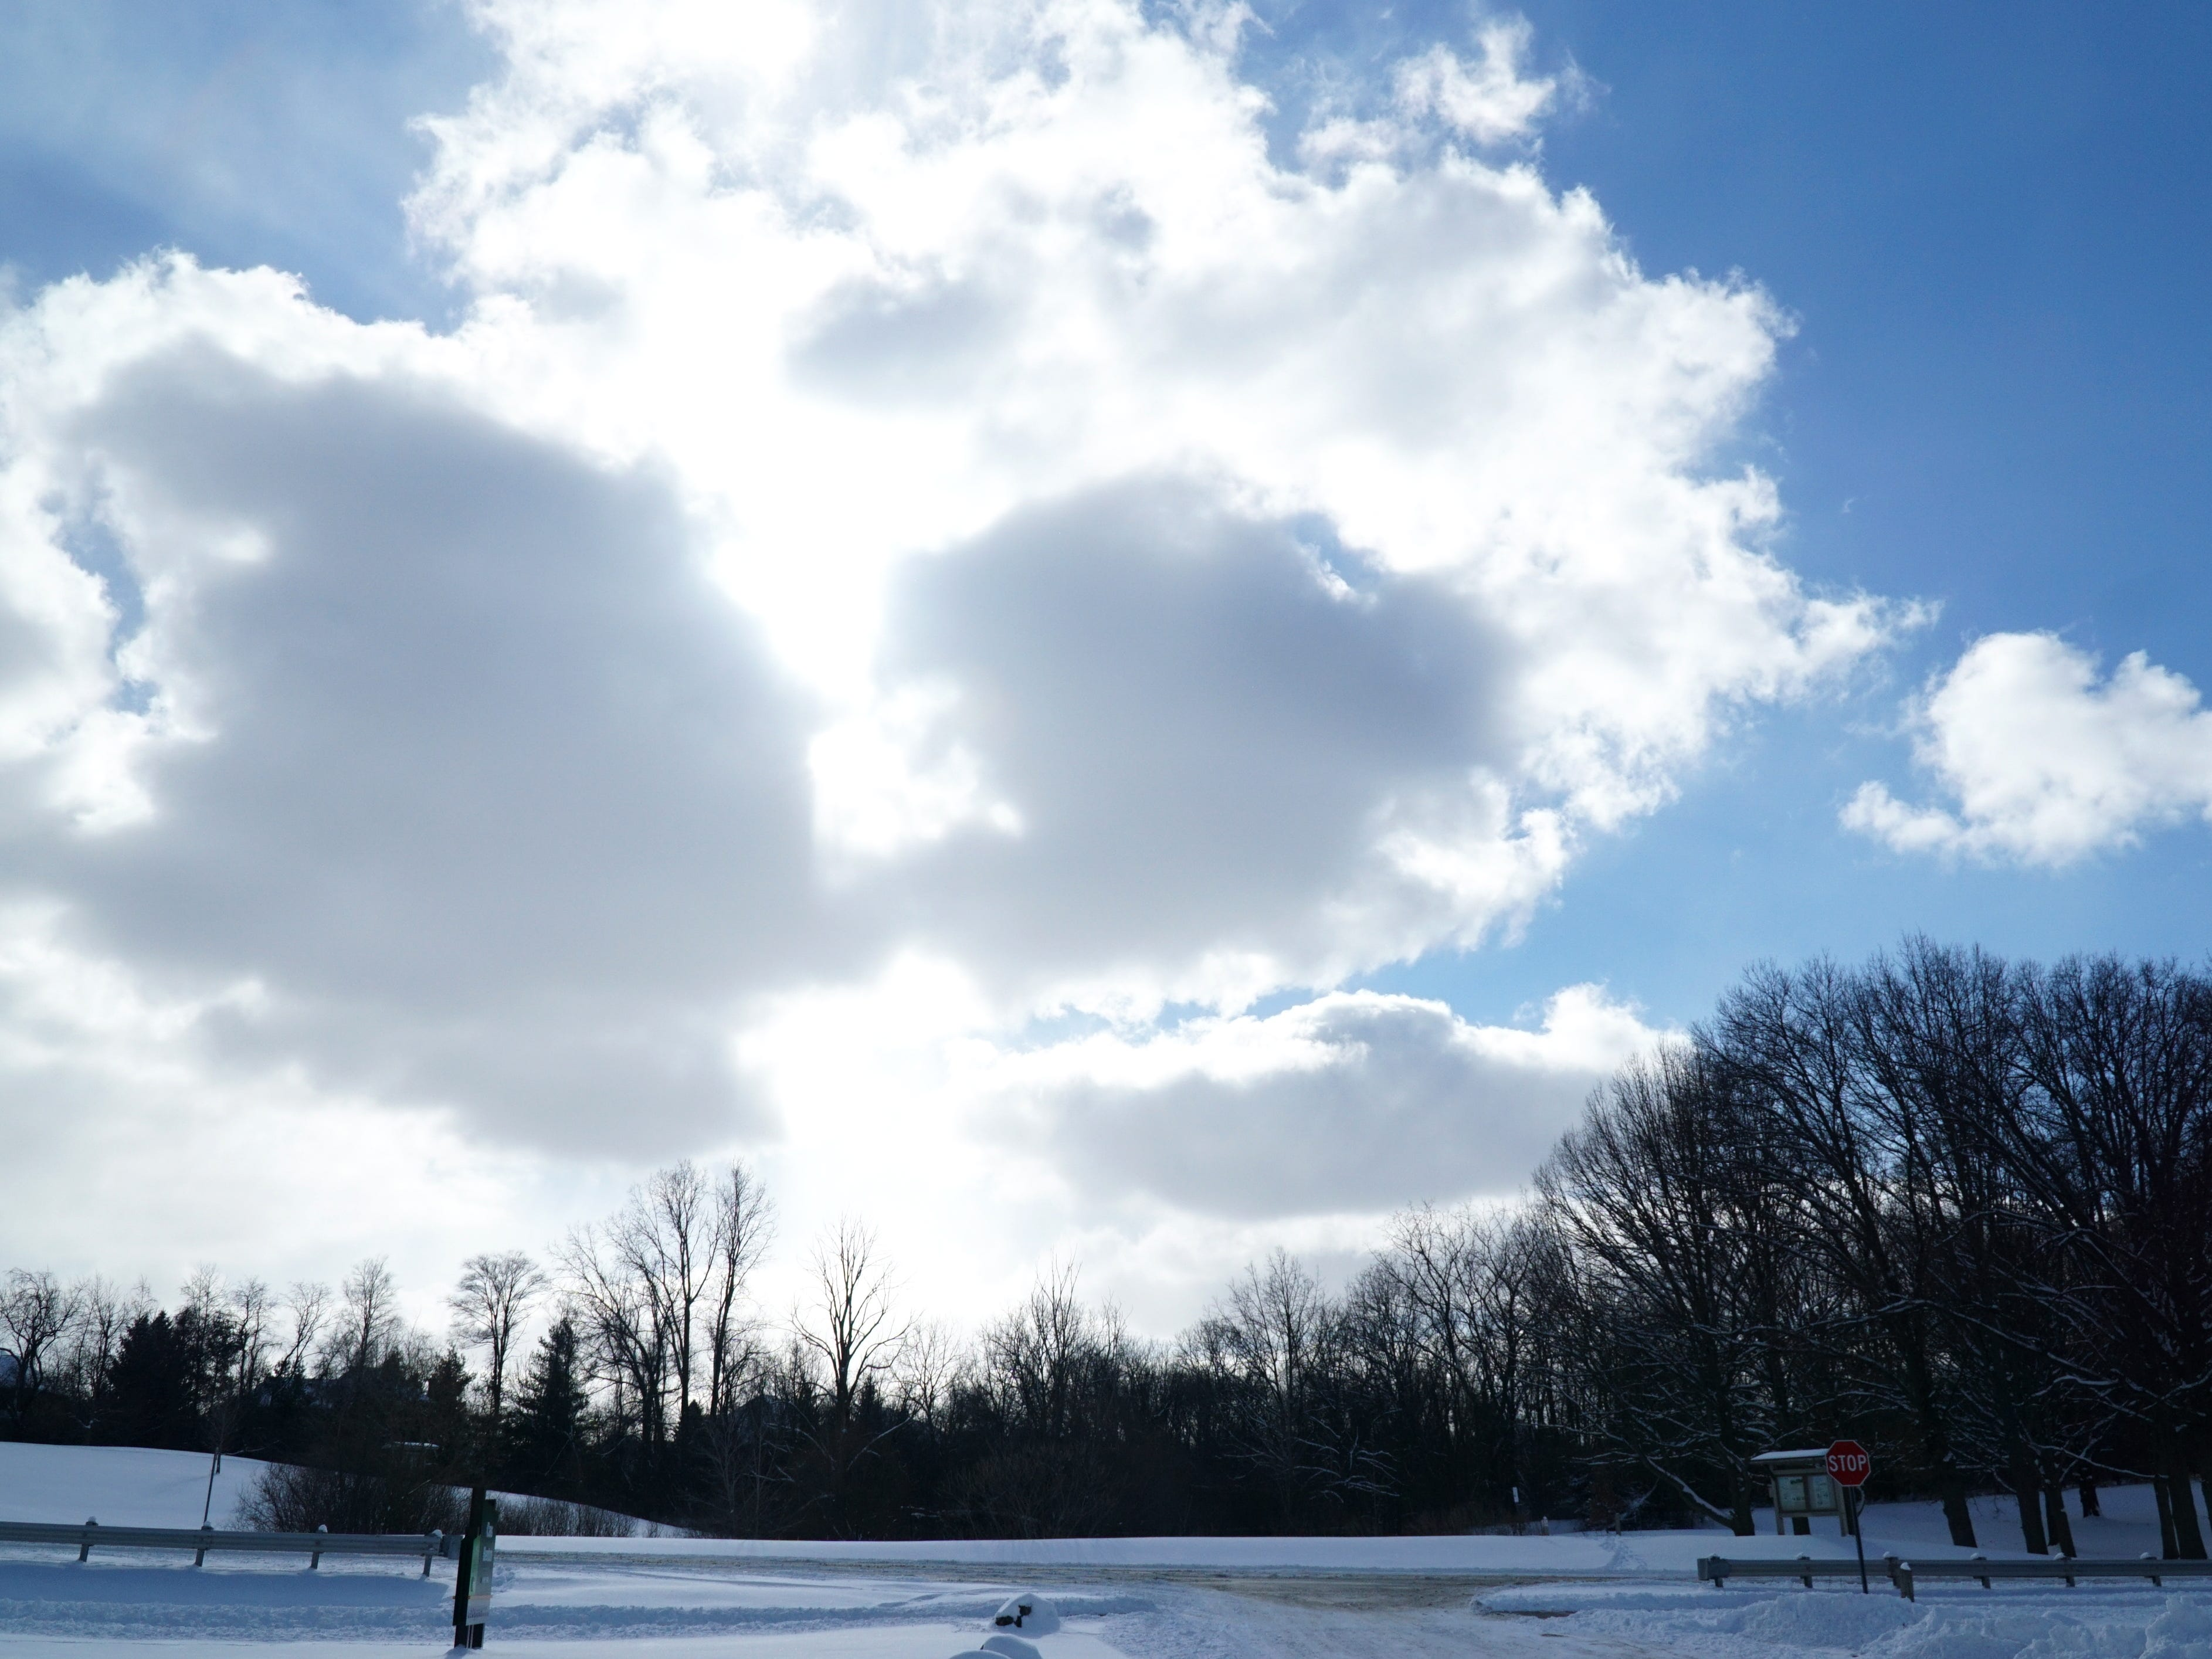 A bright but somewhat cloudy sky shines over Hines Park in Northville Township on Feb. 18.